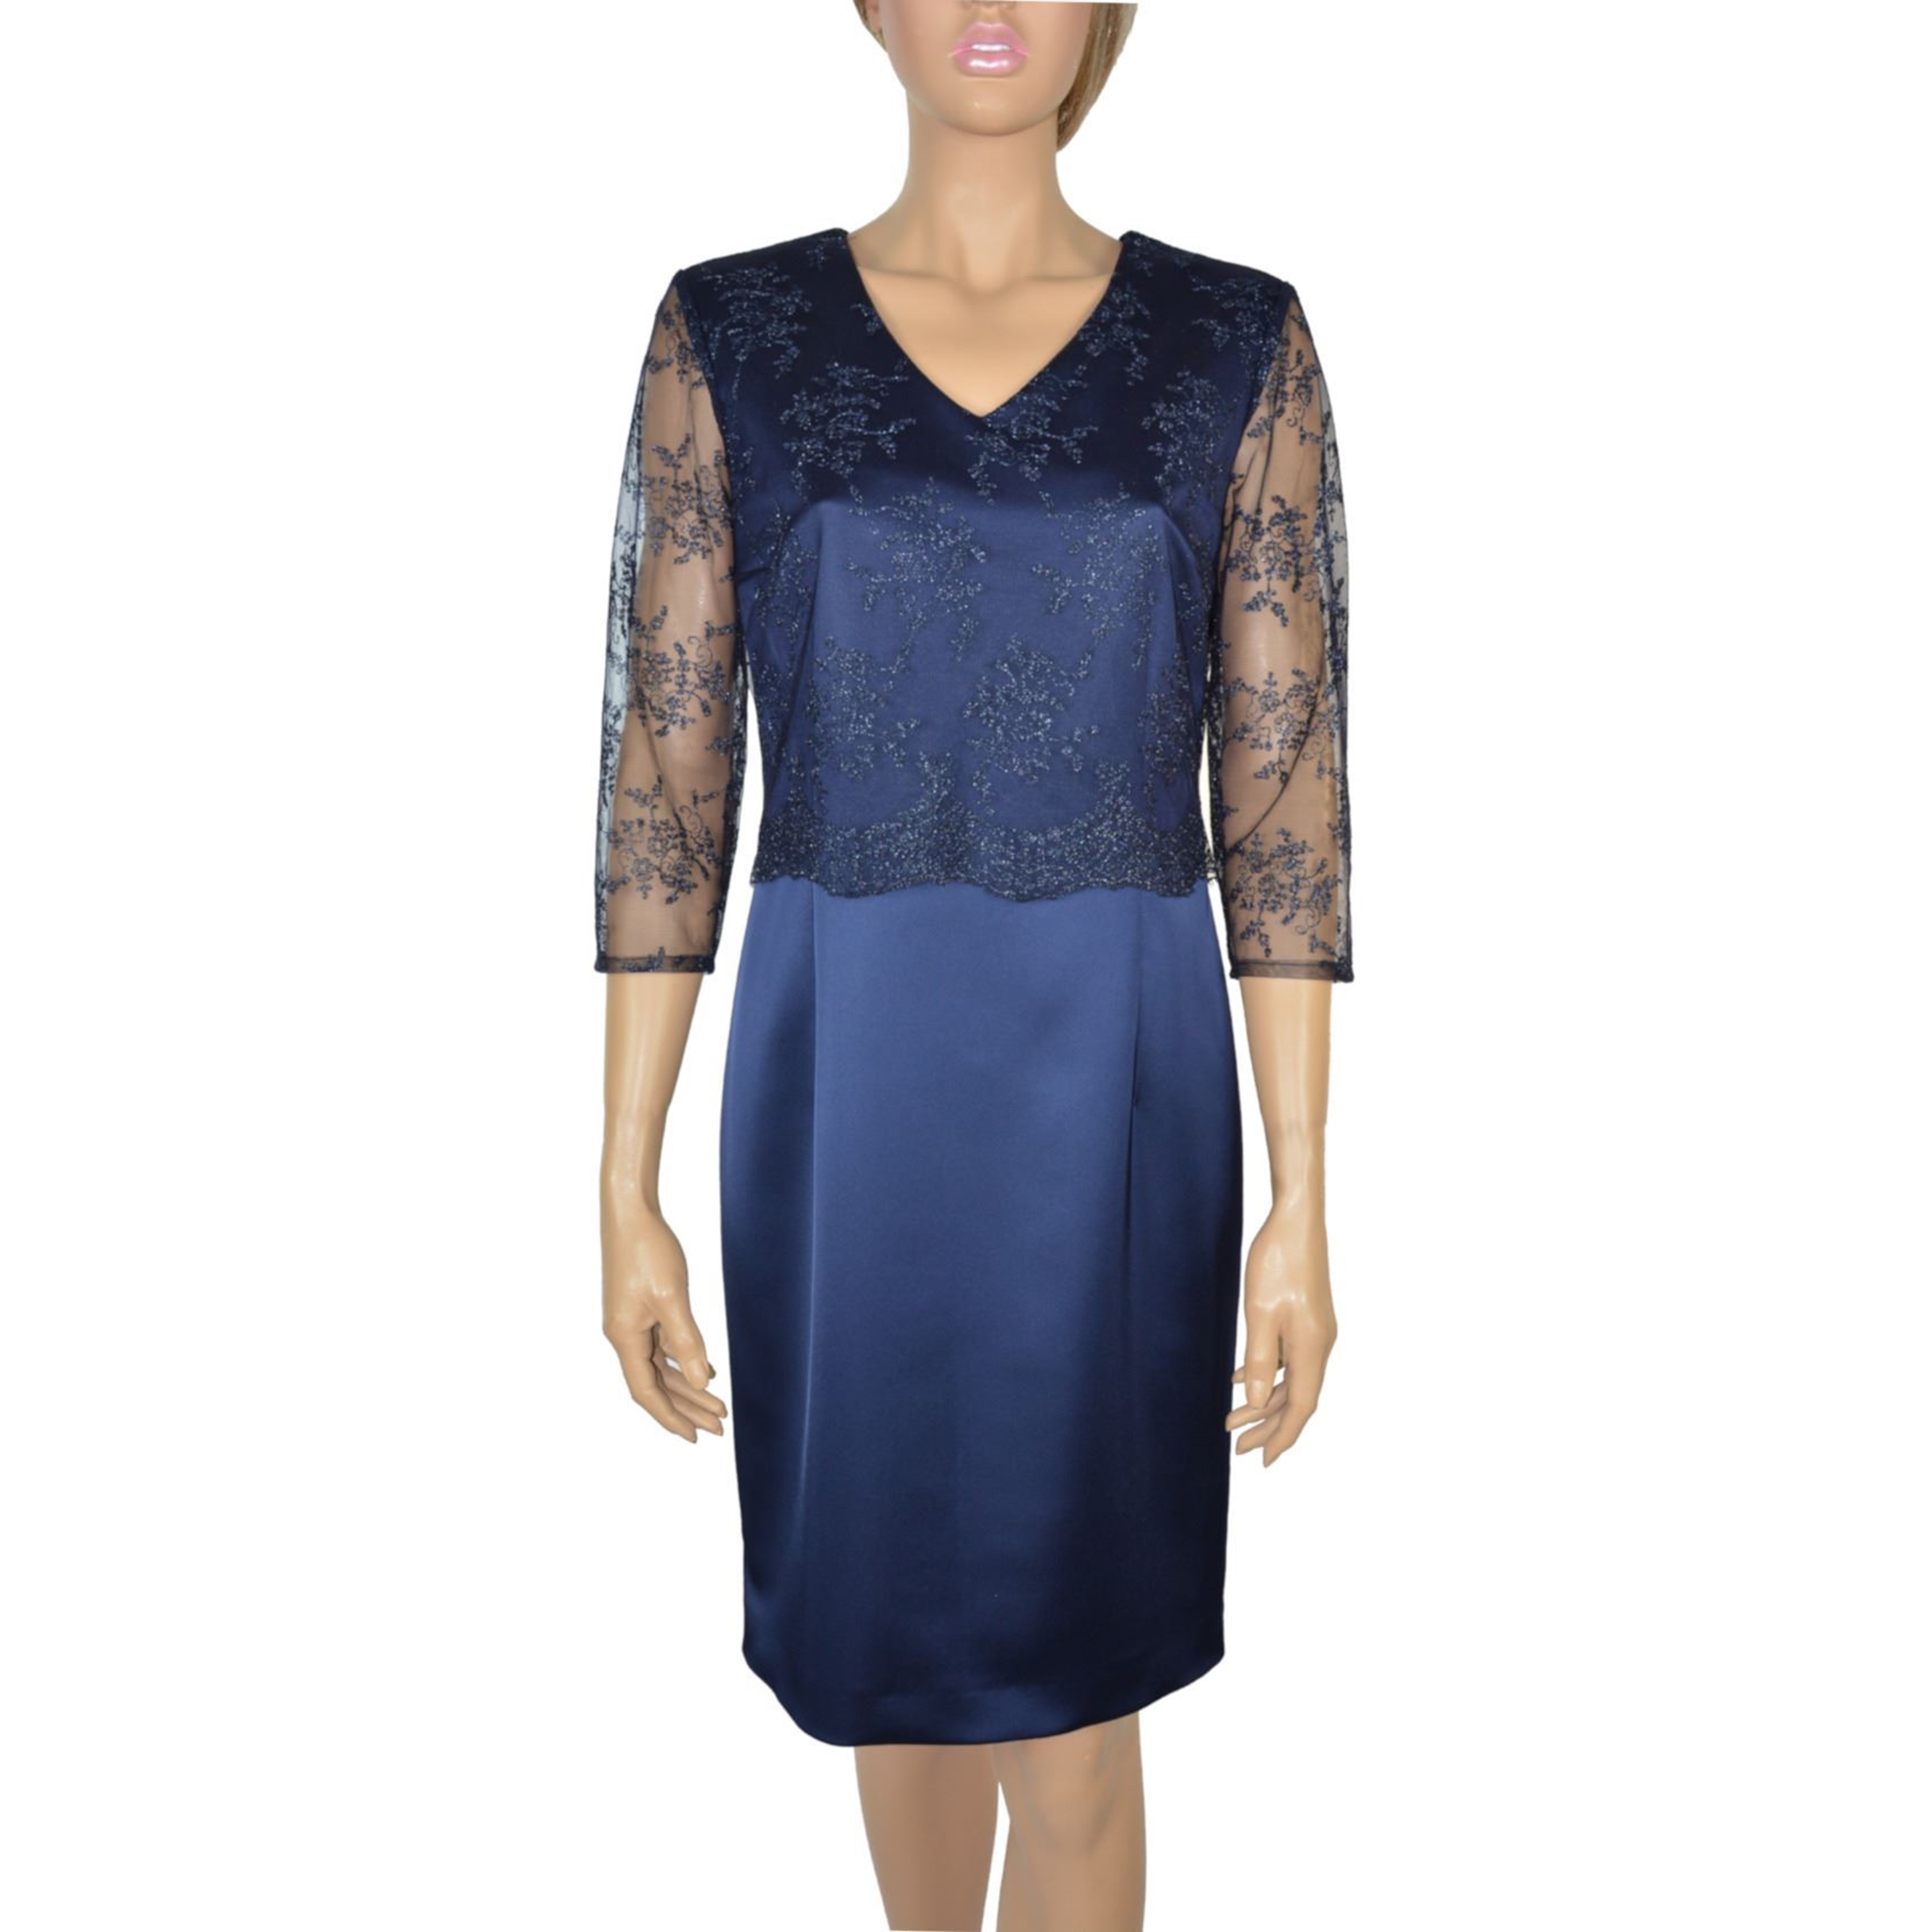 Picture of Women's Dress - LM451404 BLUE